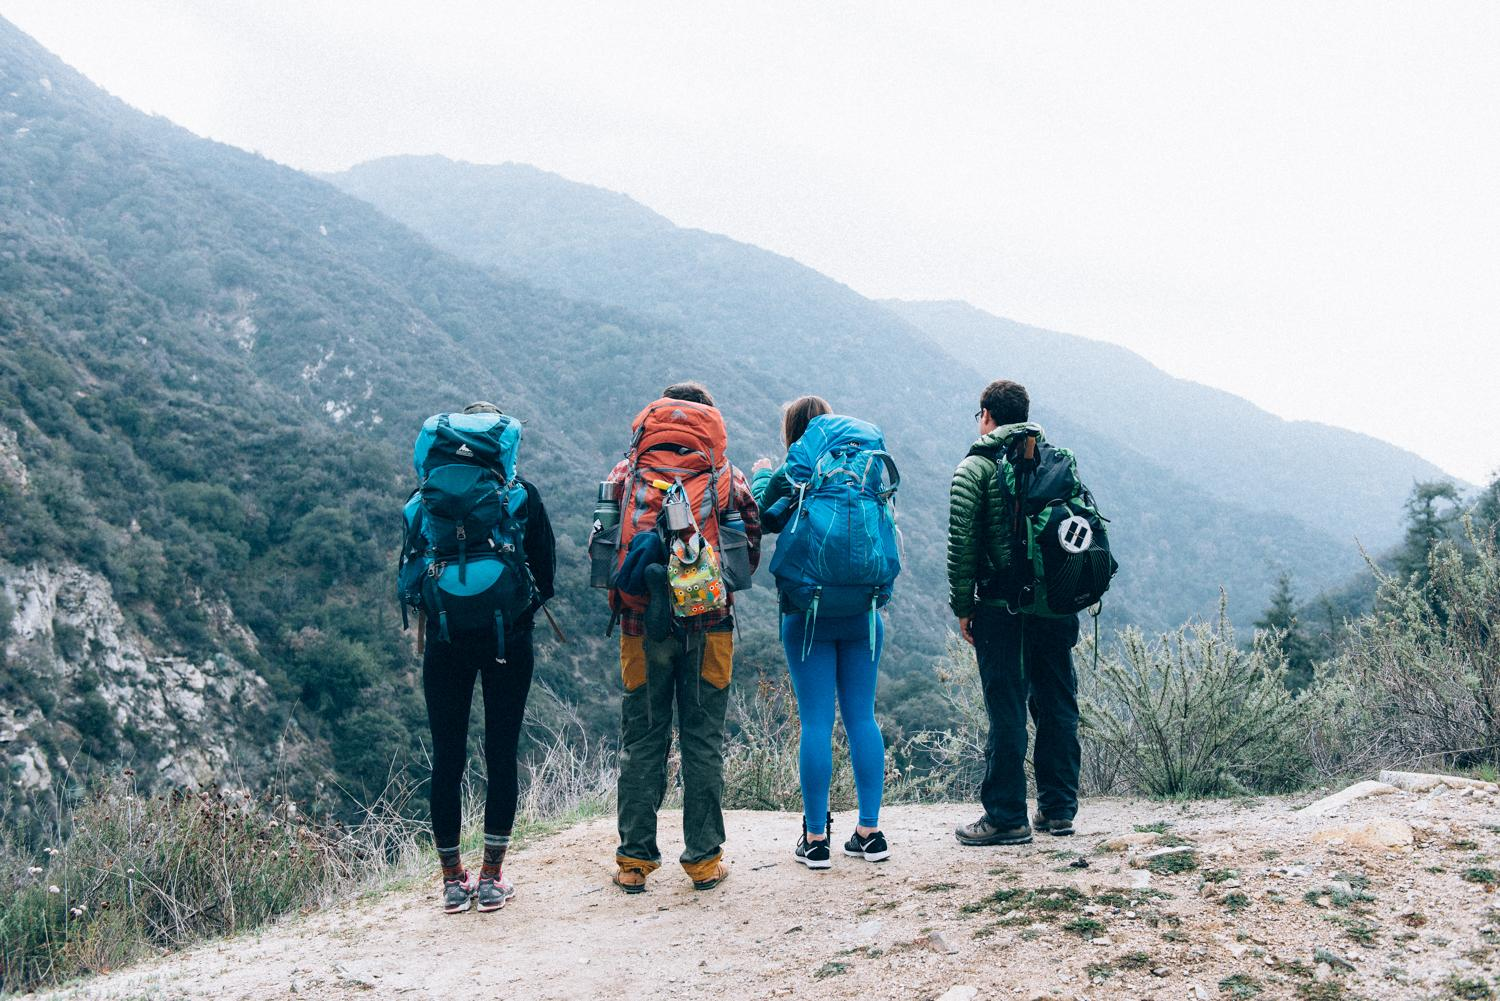 Wilderness First Aid Course & Backpacking Adventure at Sturtevant Camp